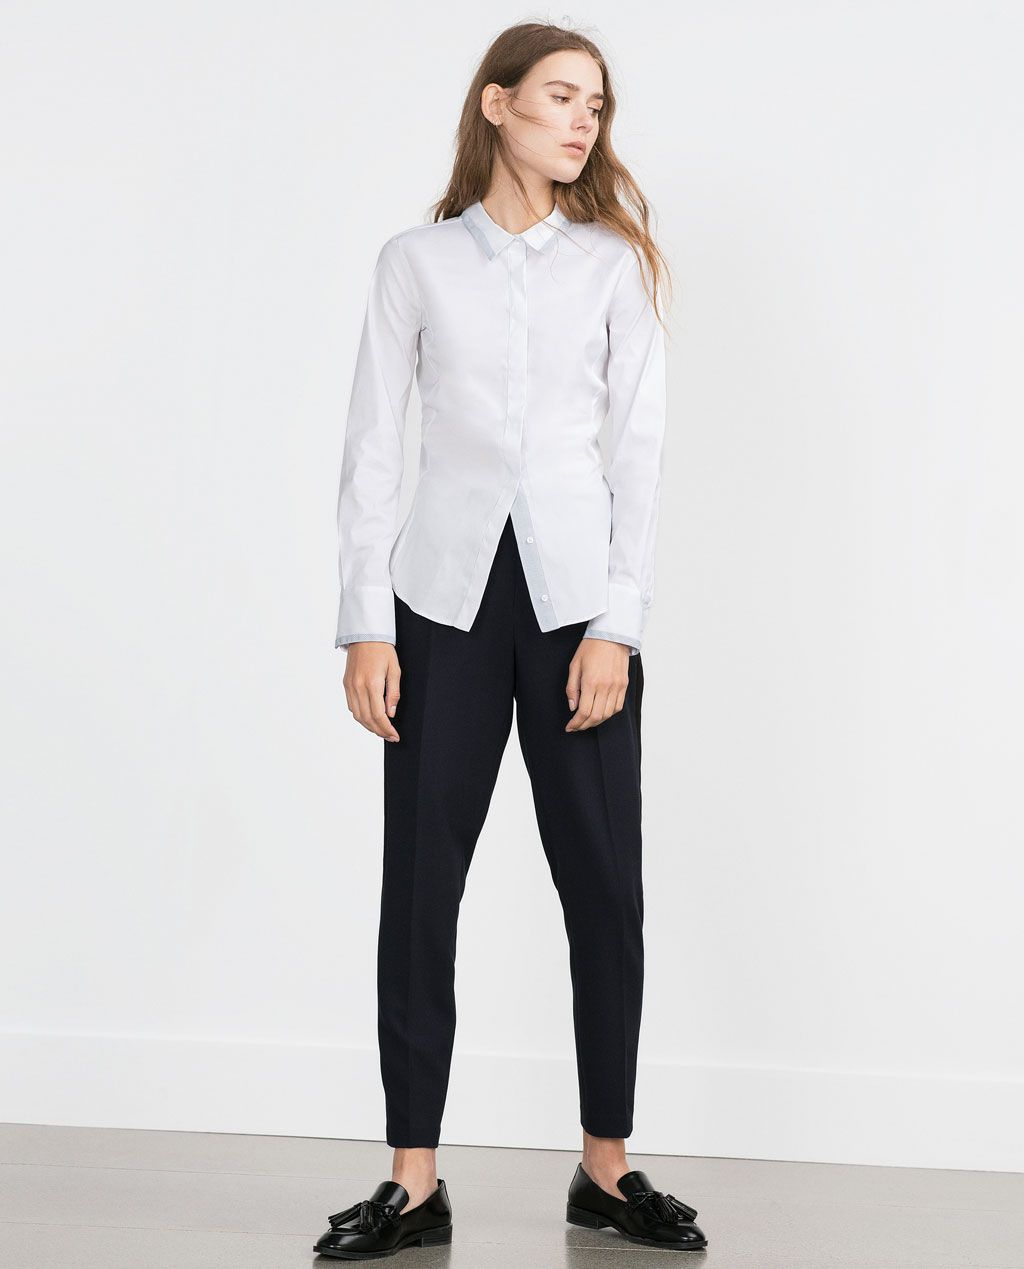 BASIC SHIRT-View all-Tops-WOMAN | ZARA United States